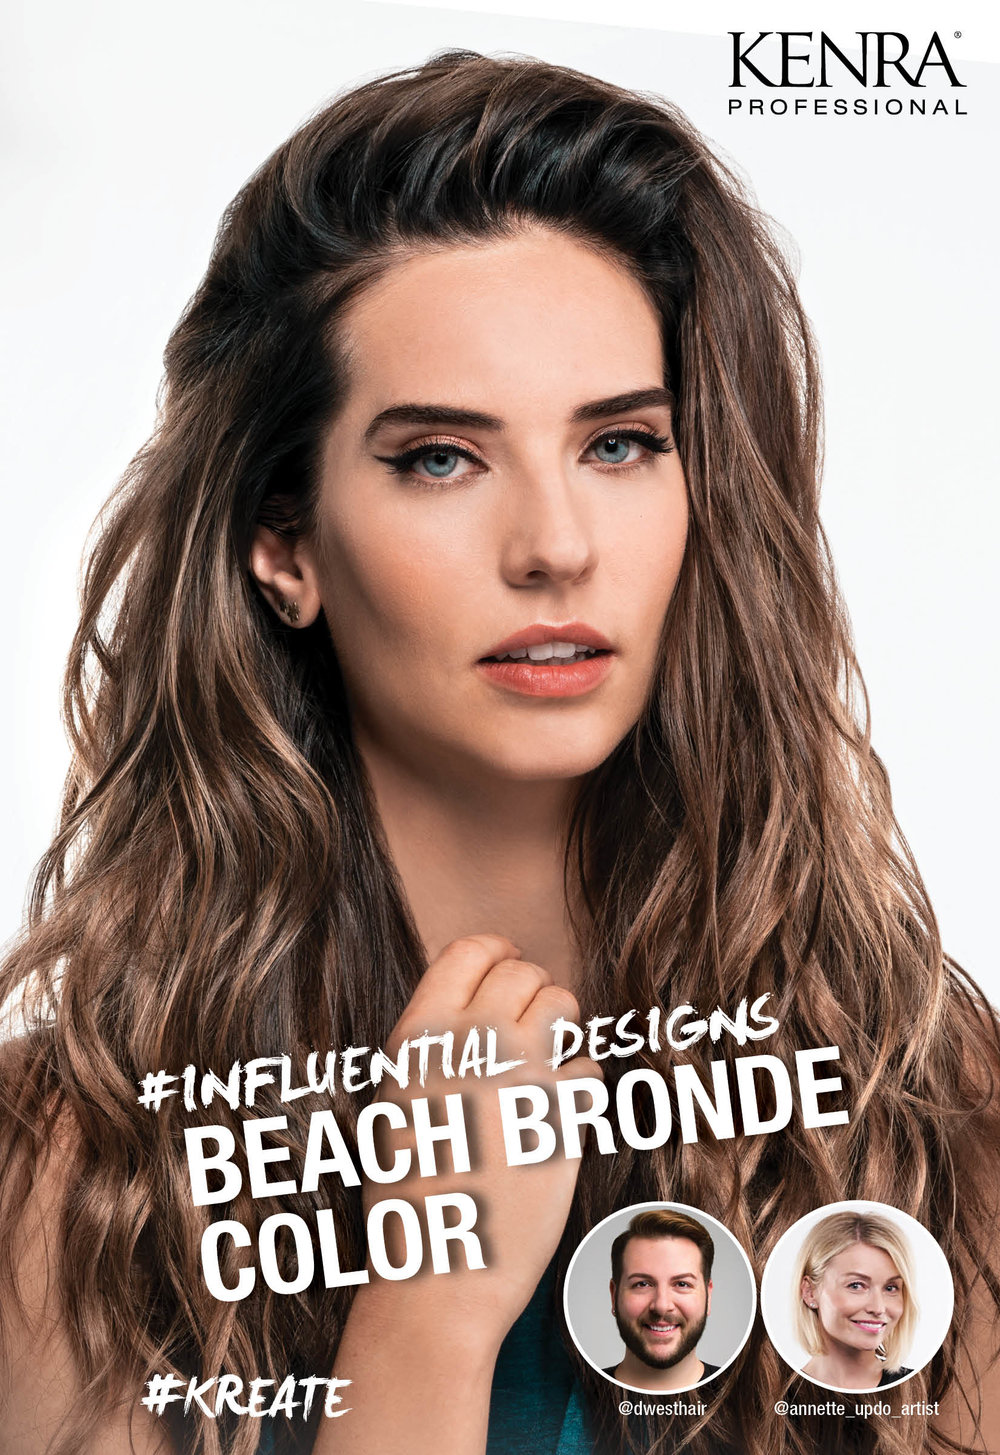 ID_BeachBronde_Color.jpg